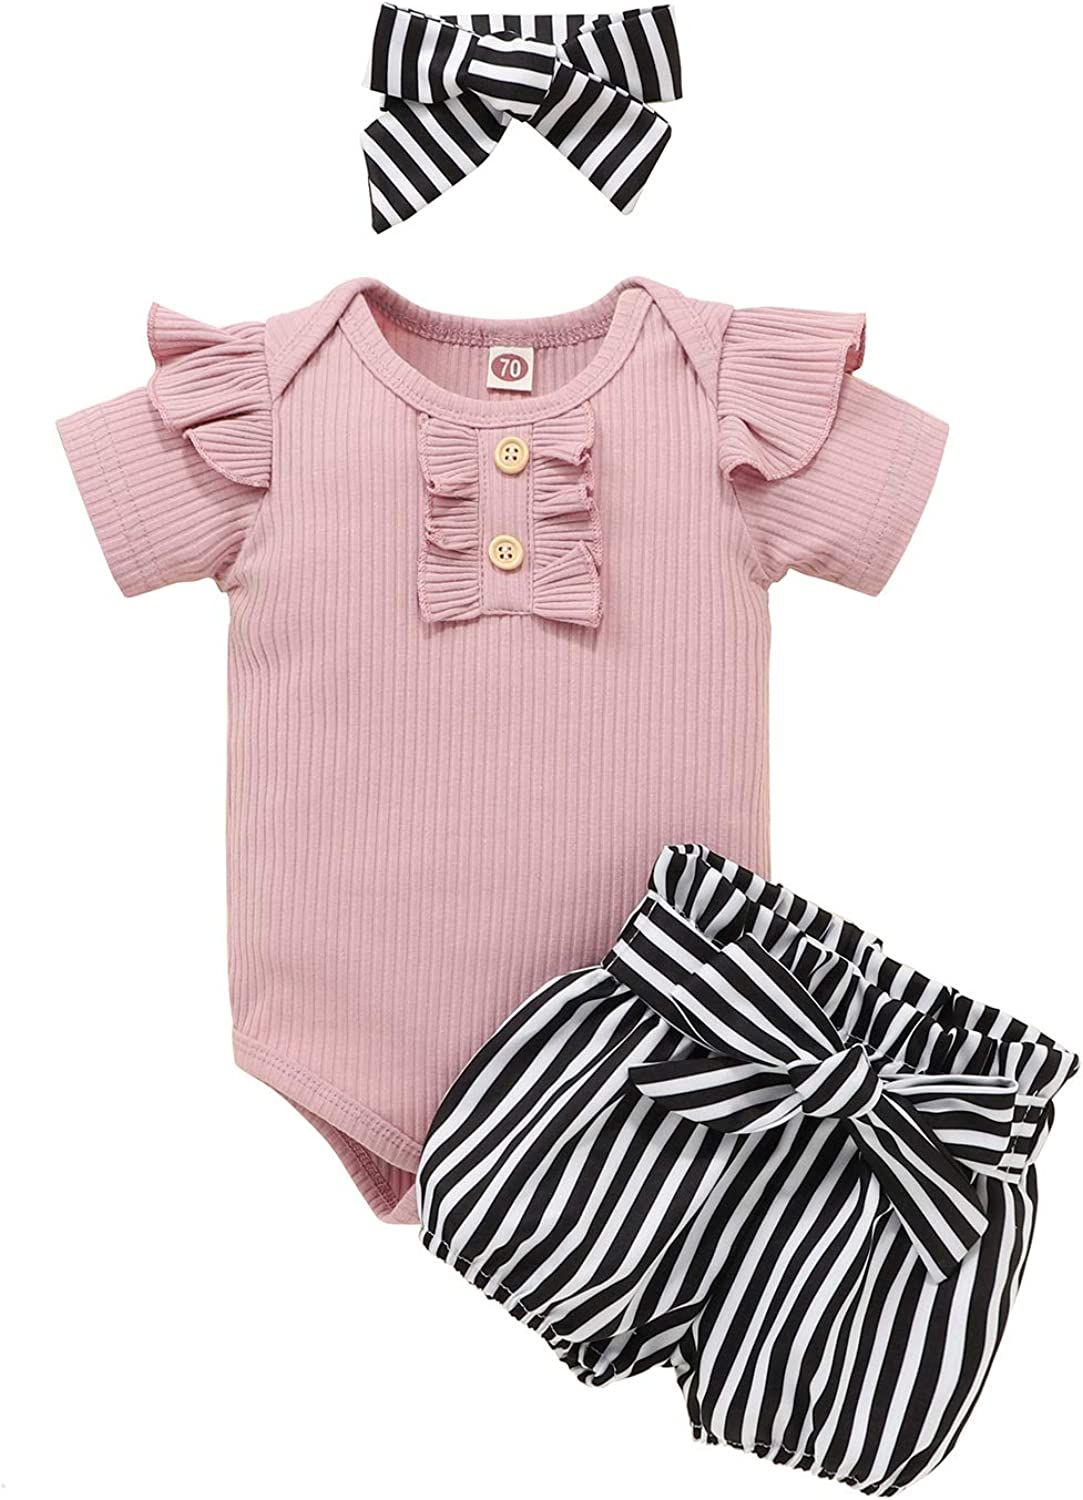 EQSJIU Newborn Infant Baby Direct sale of manufacturer New Orleans Mall Girl Clothes Pa Winter Onesies Ribbed